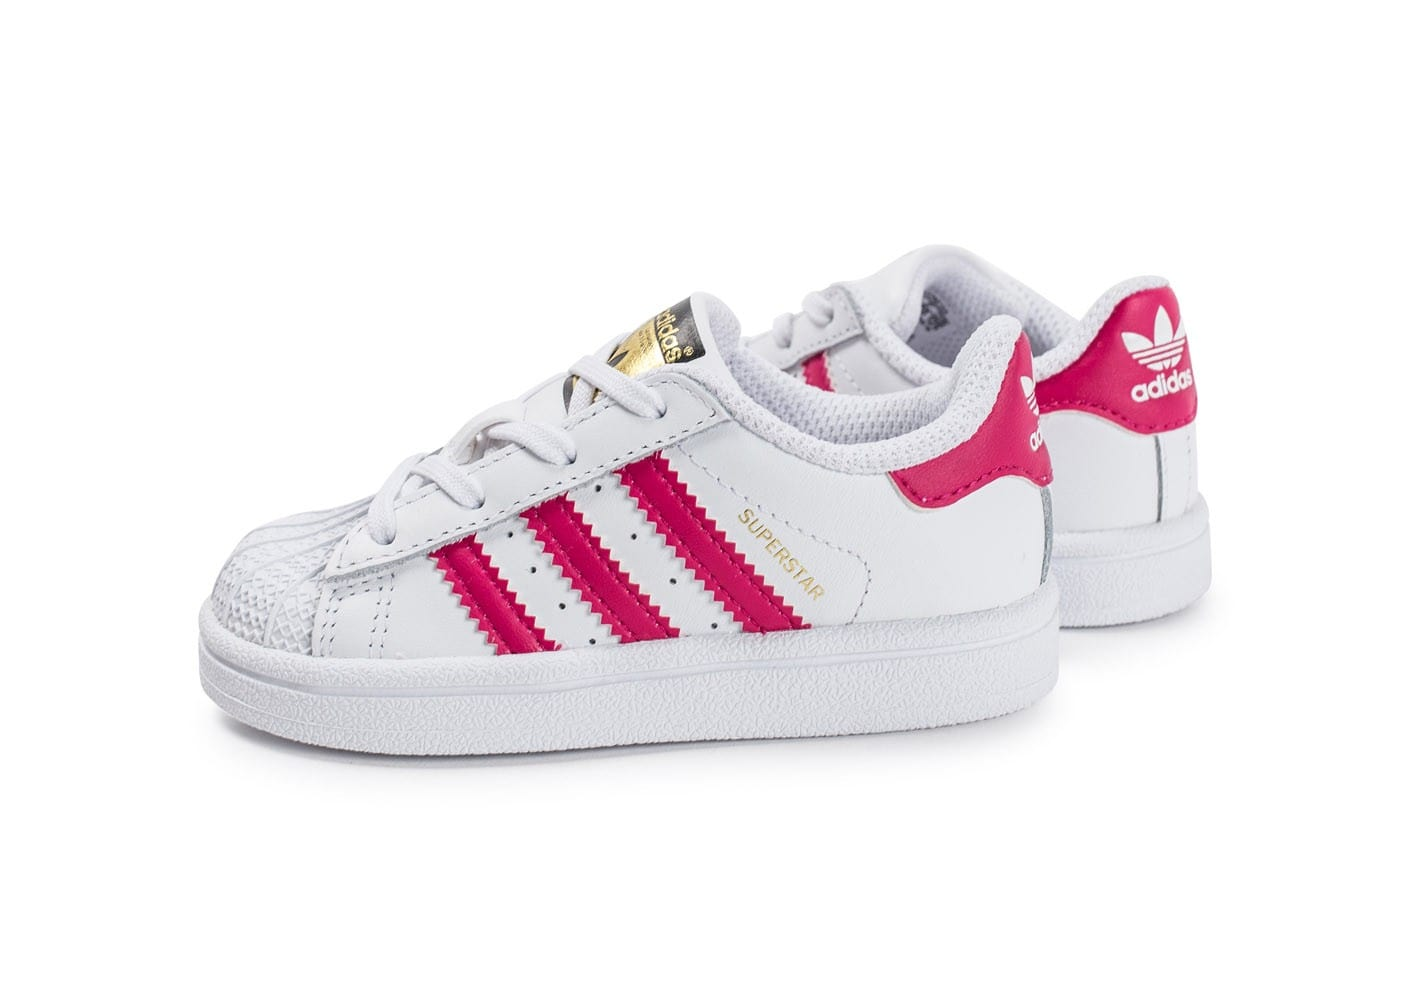 adidas superstar b b blanche et rose chaussures adidas chausport. Black Bedroom Furniture Sets. Home Design Ideas